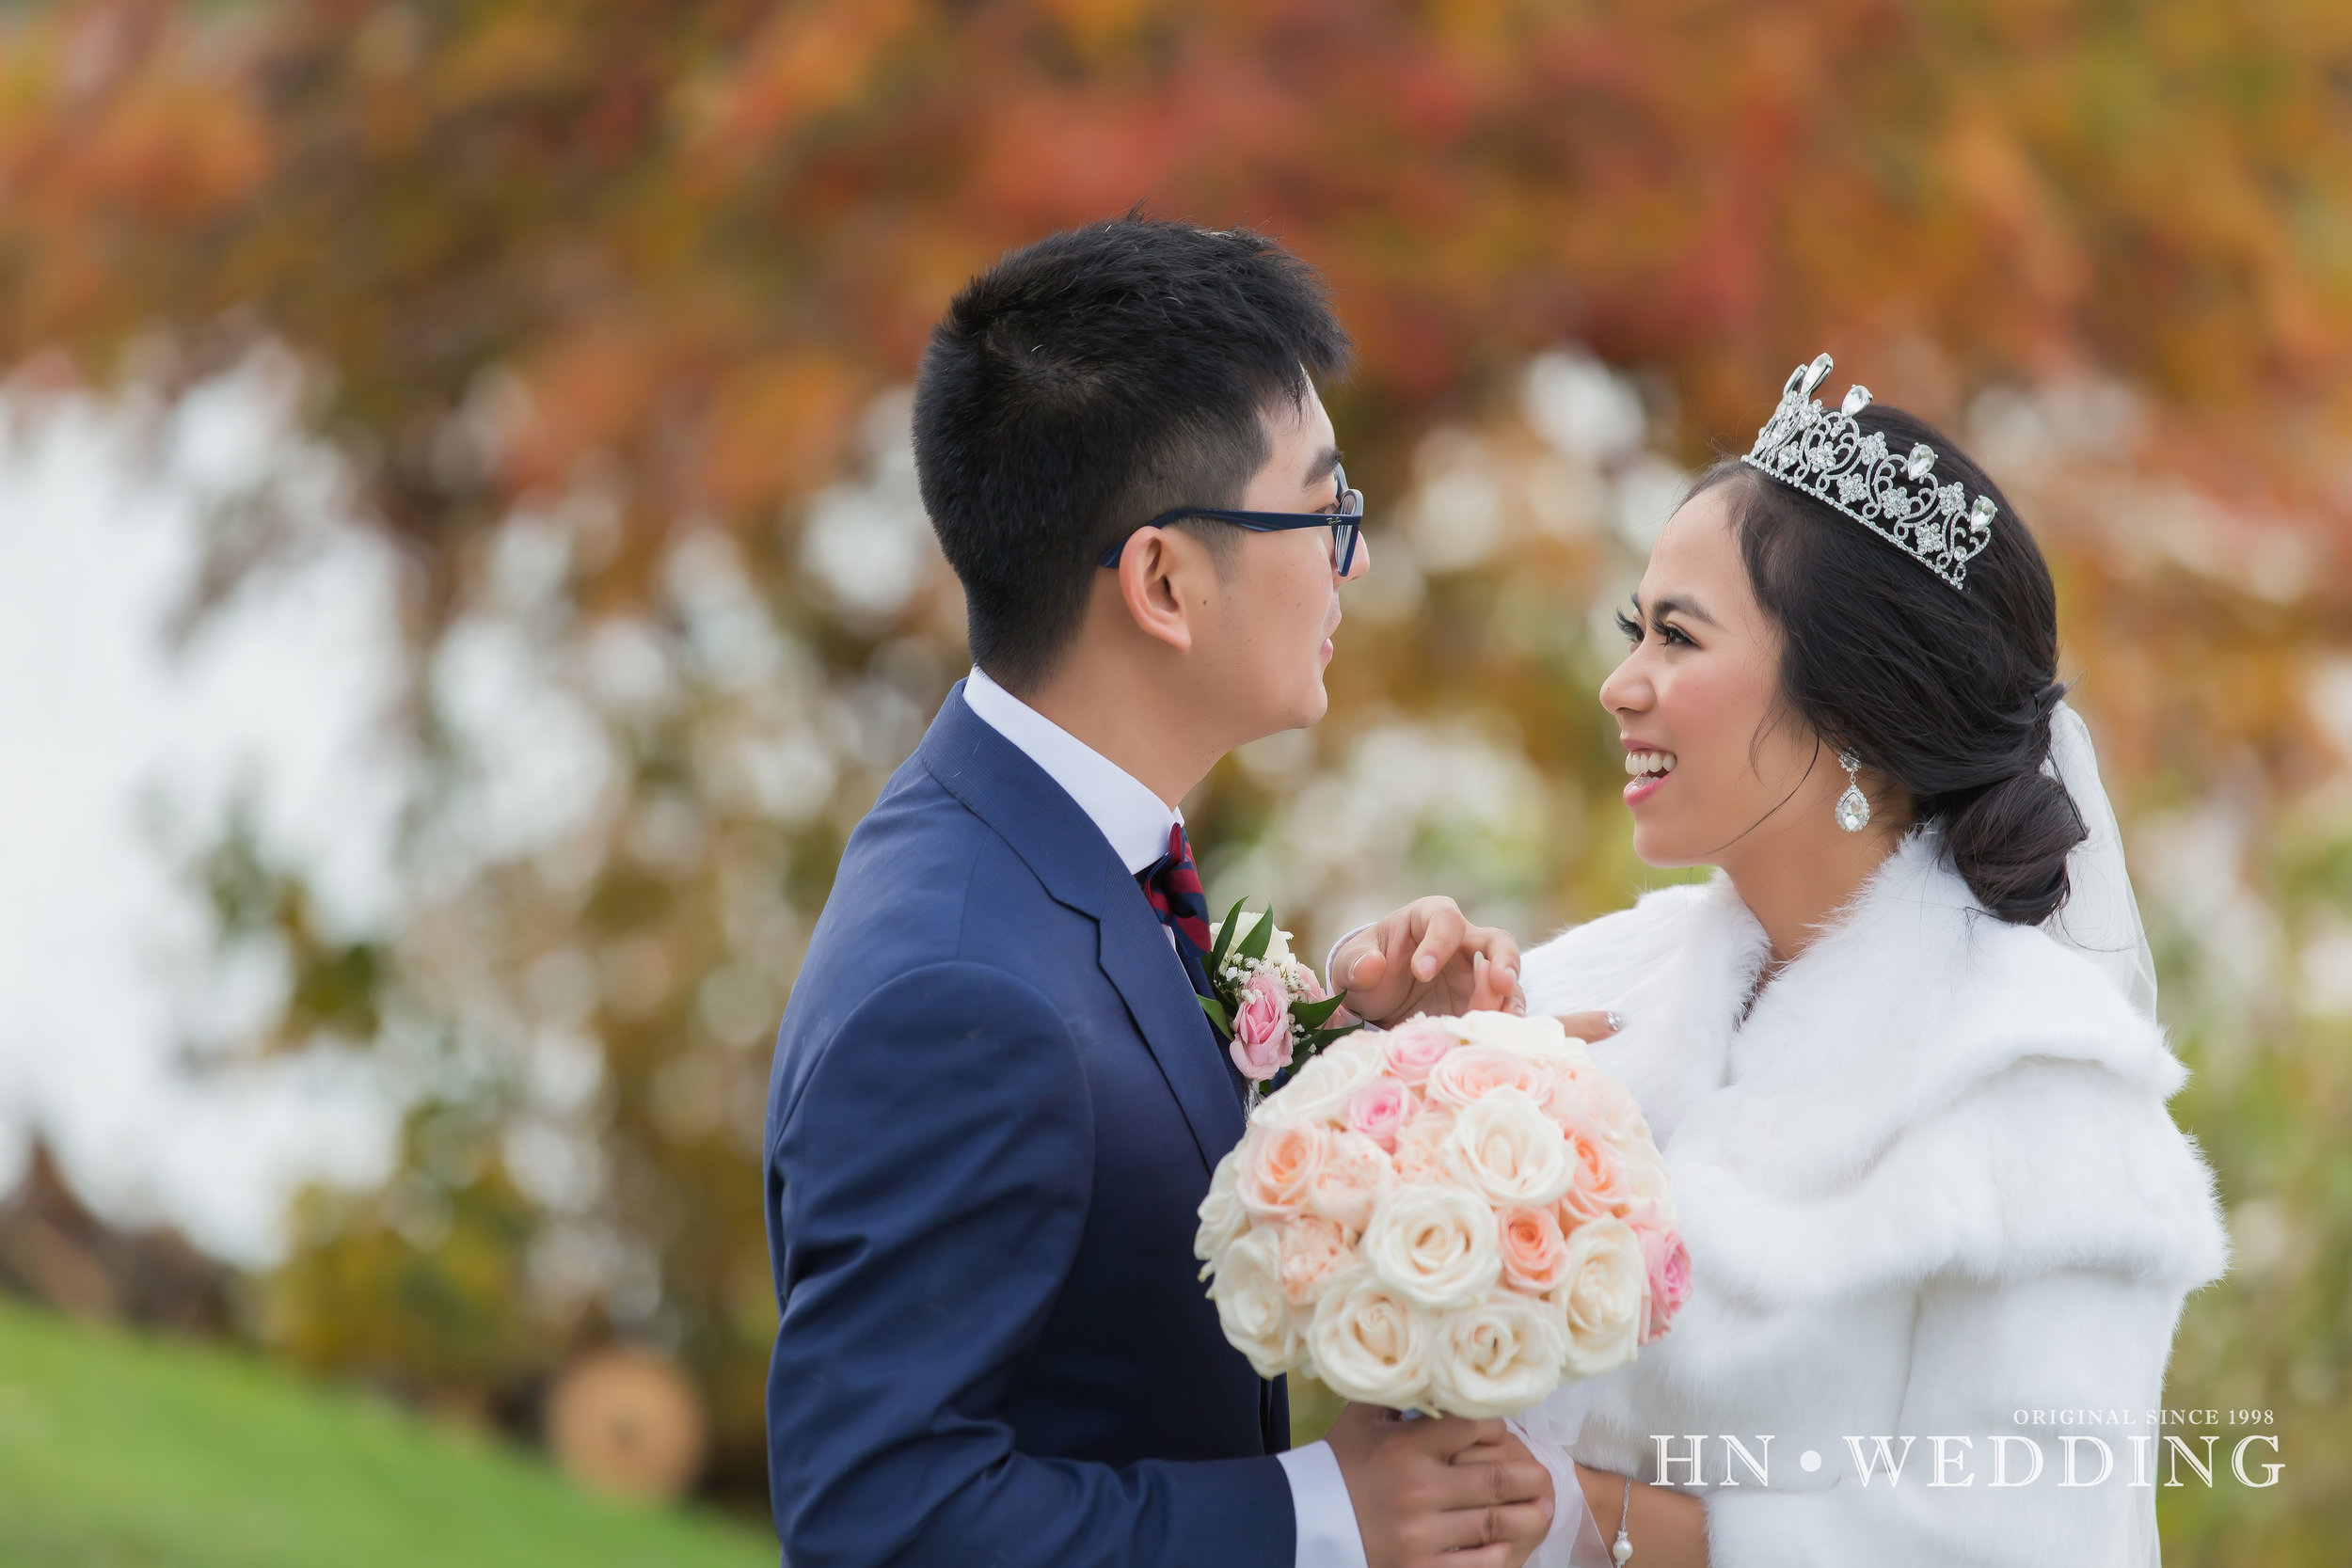 HNwedding-weddingday-20161029-5734.jpg